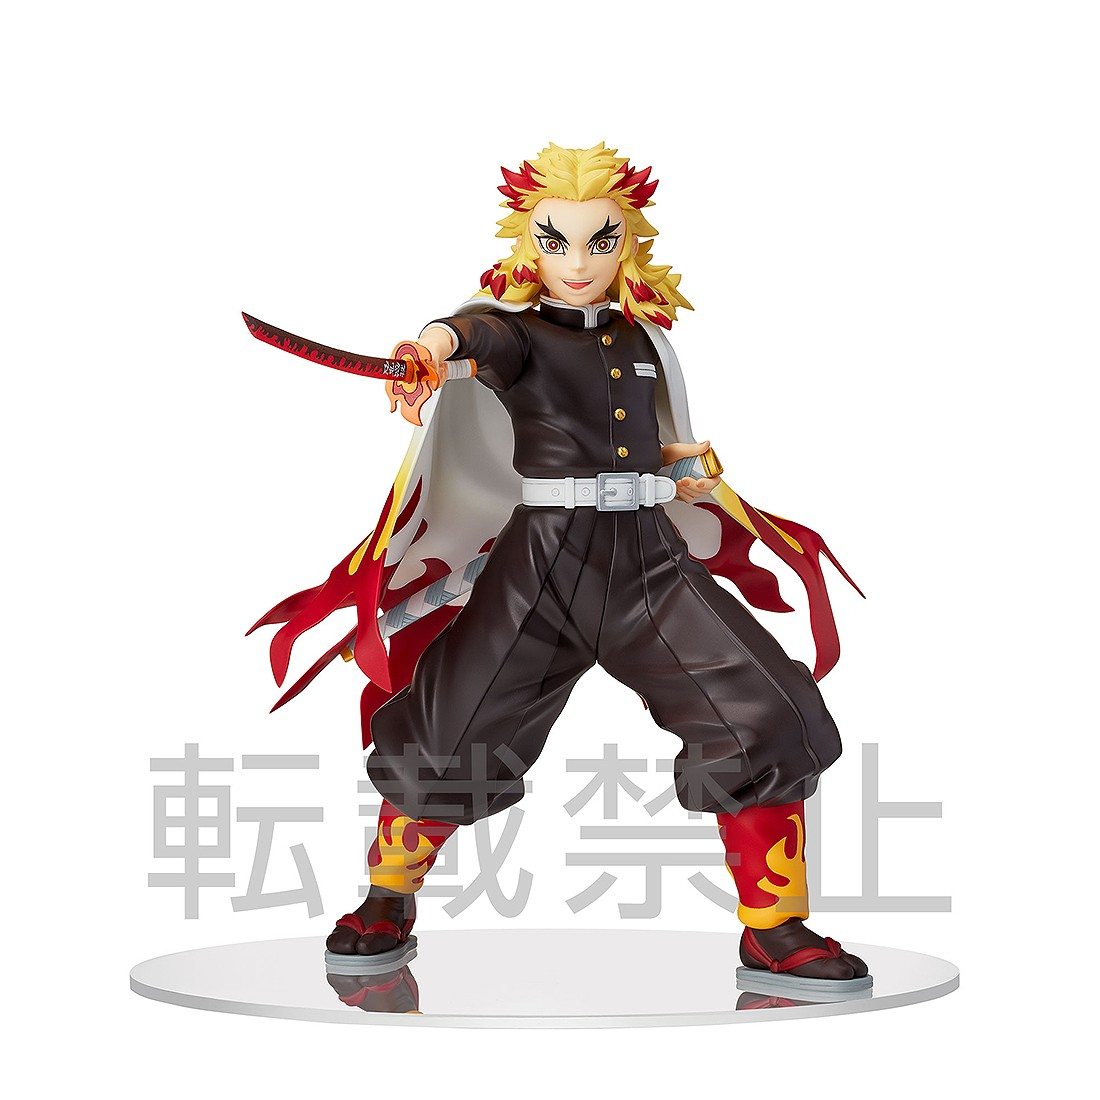 PREORDER - Sega Demon Slayer Kimetsu no Yaiba Kyojuro Rengoku SPM Figure (black)